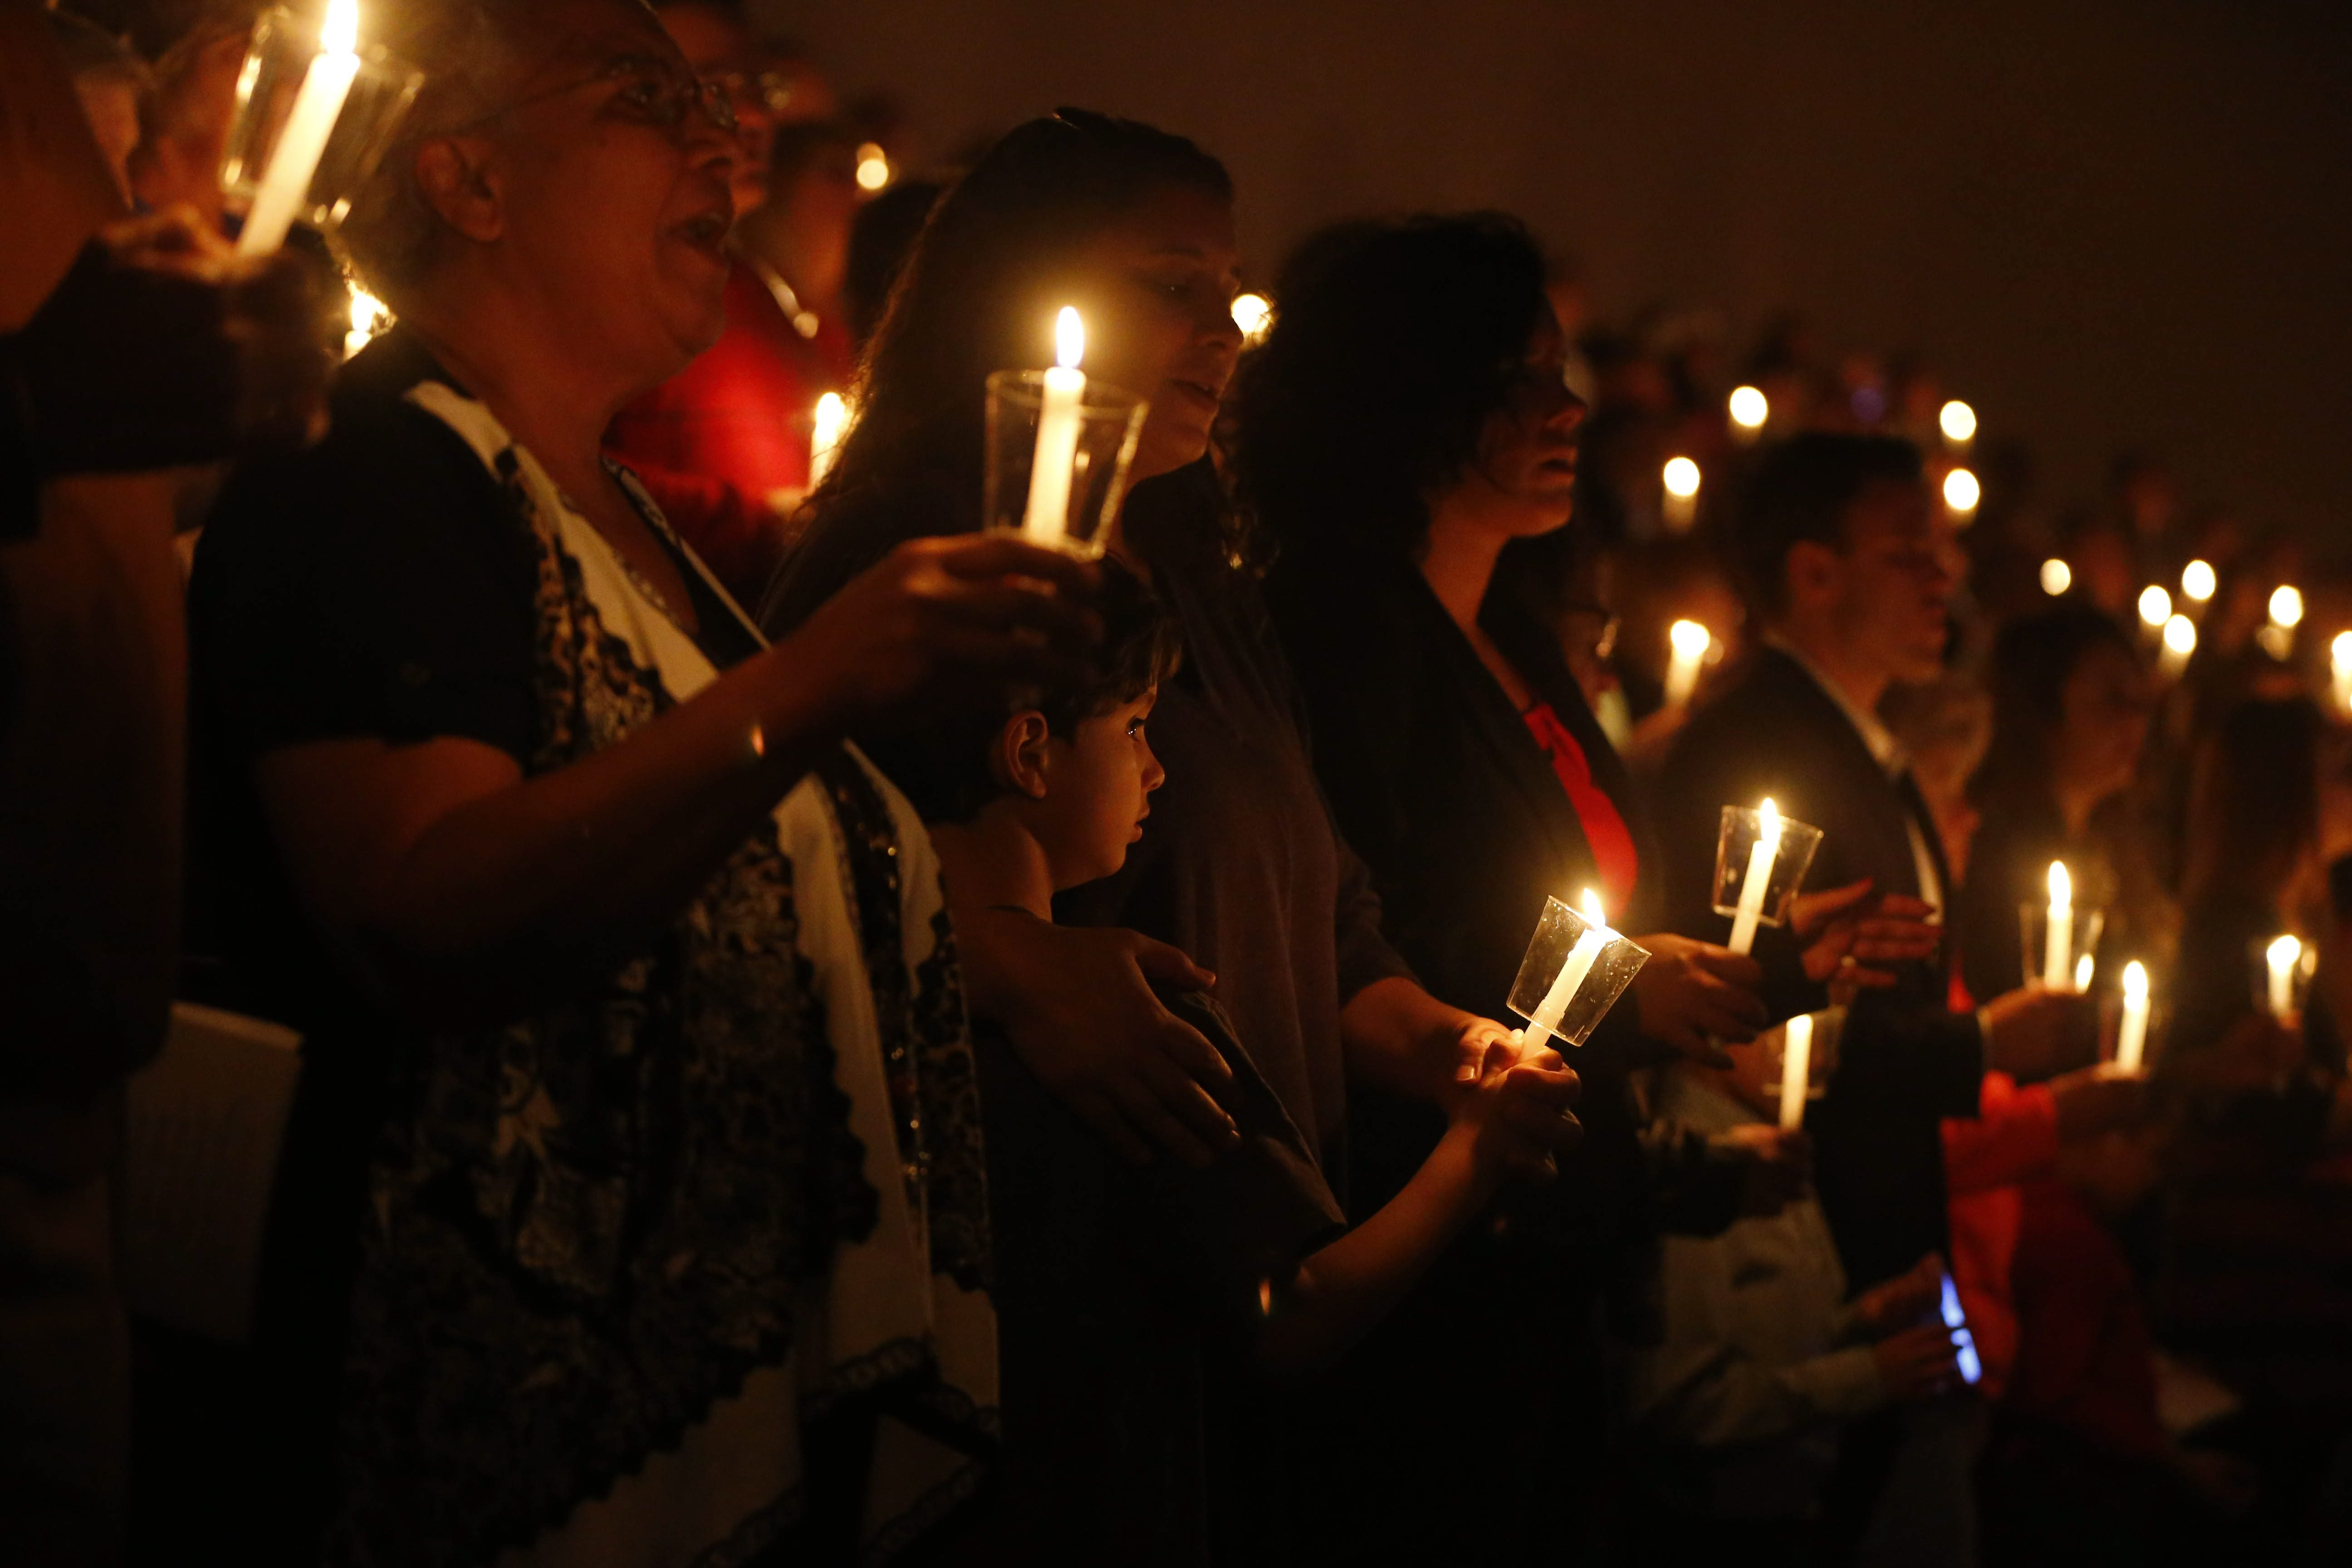 People hold candles and sing carols during Christmas Eve service at the Chapel at CrossPoint, a nondenominational church  in Amherst, on Thursday.